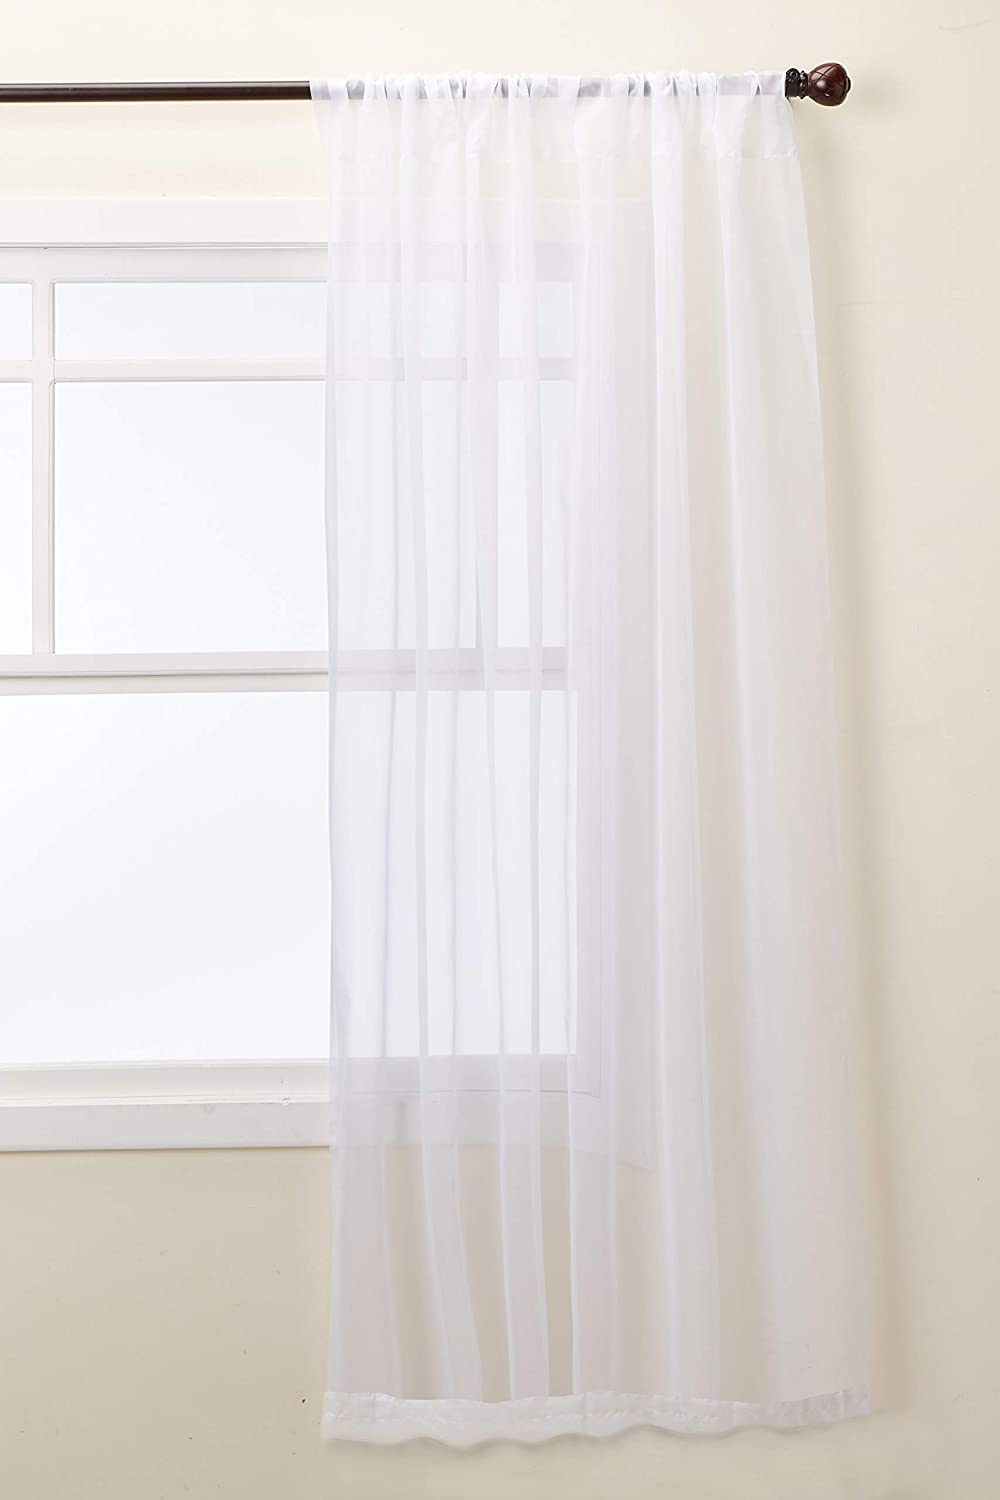 No 918 53566 Emily Sheer Voile Rod Pocket Curtain Panel 59 X 95 White Home Kitchen